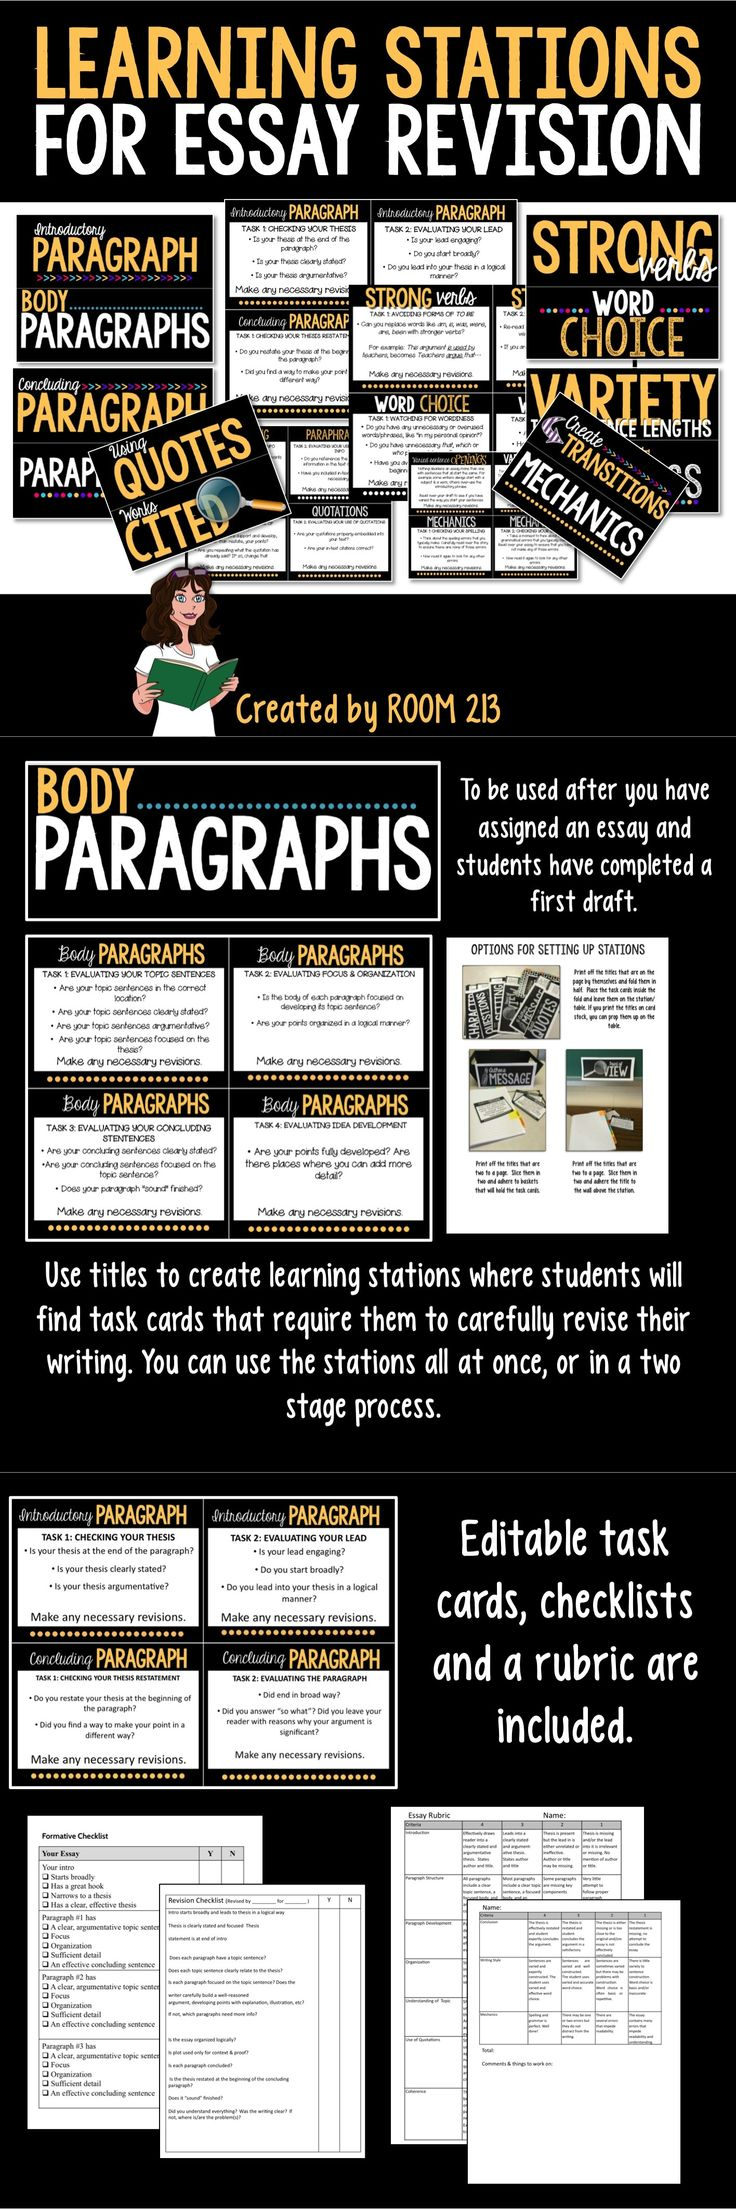 HIGH SCHOOL AND MIDDLE SCHOOL ENGLISH: Learning stations that focus on the revision process. Use for any expository and persuasive essays, including ones that require research.